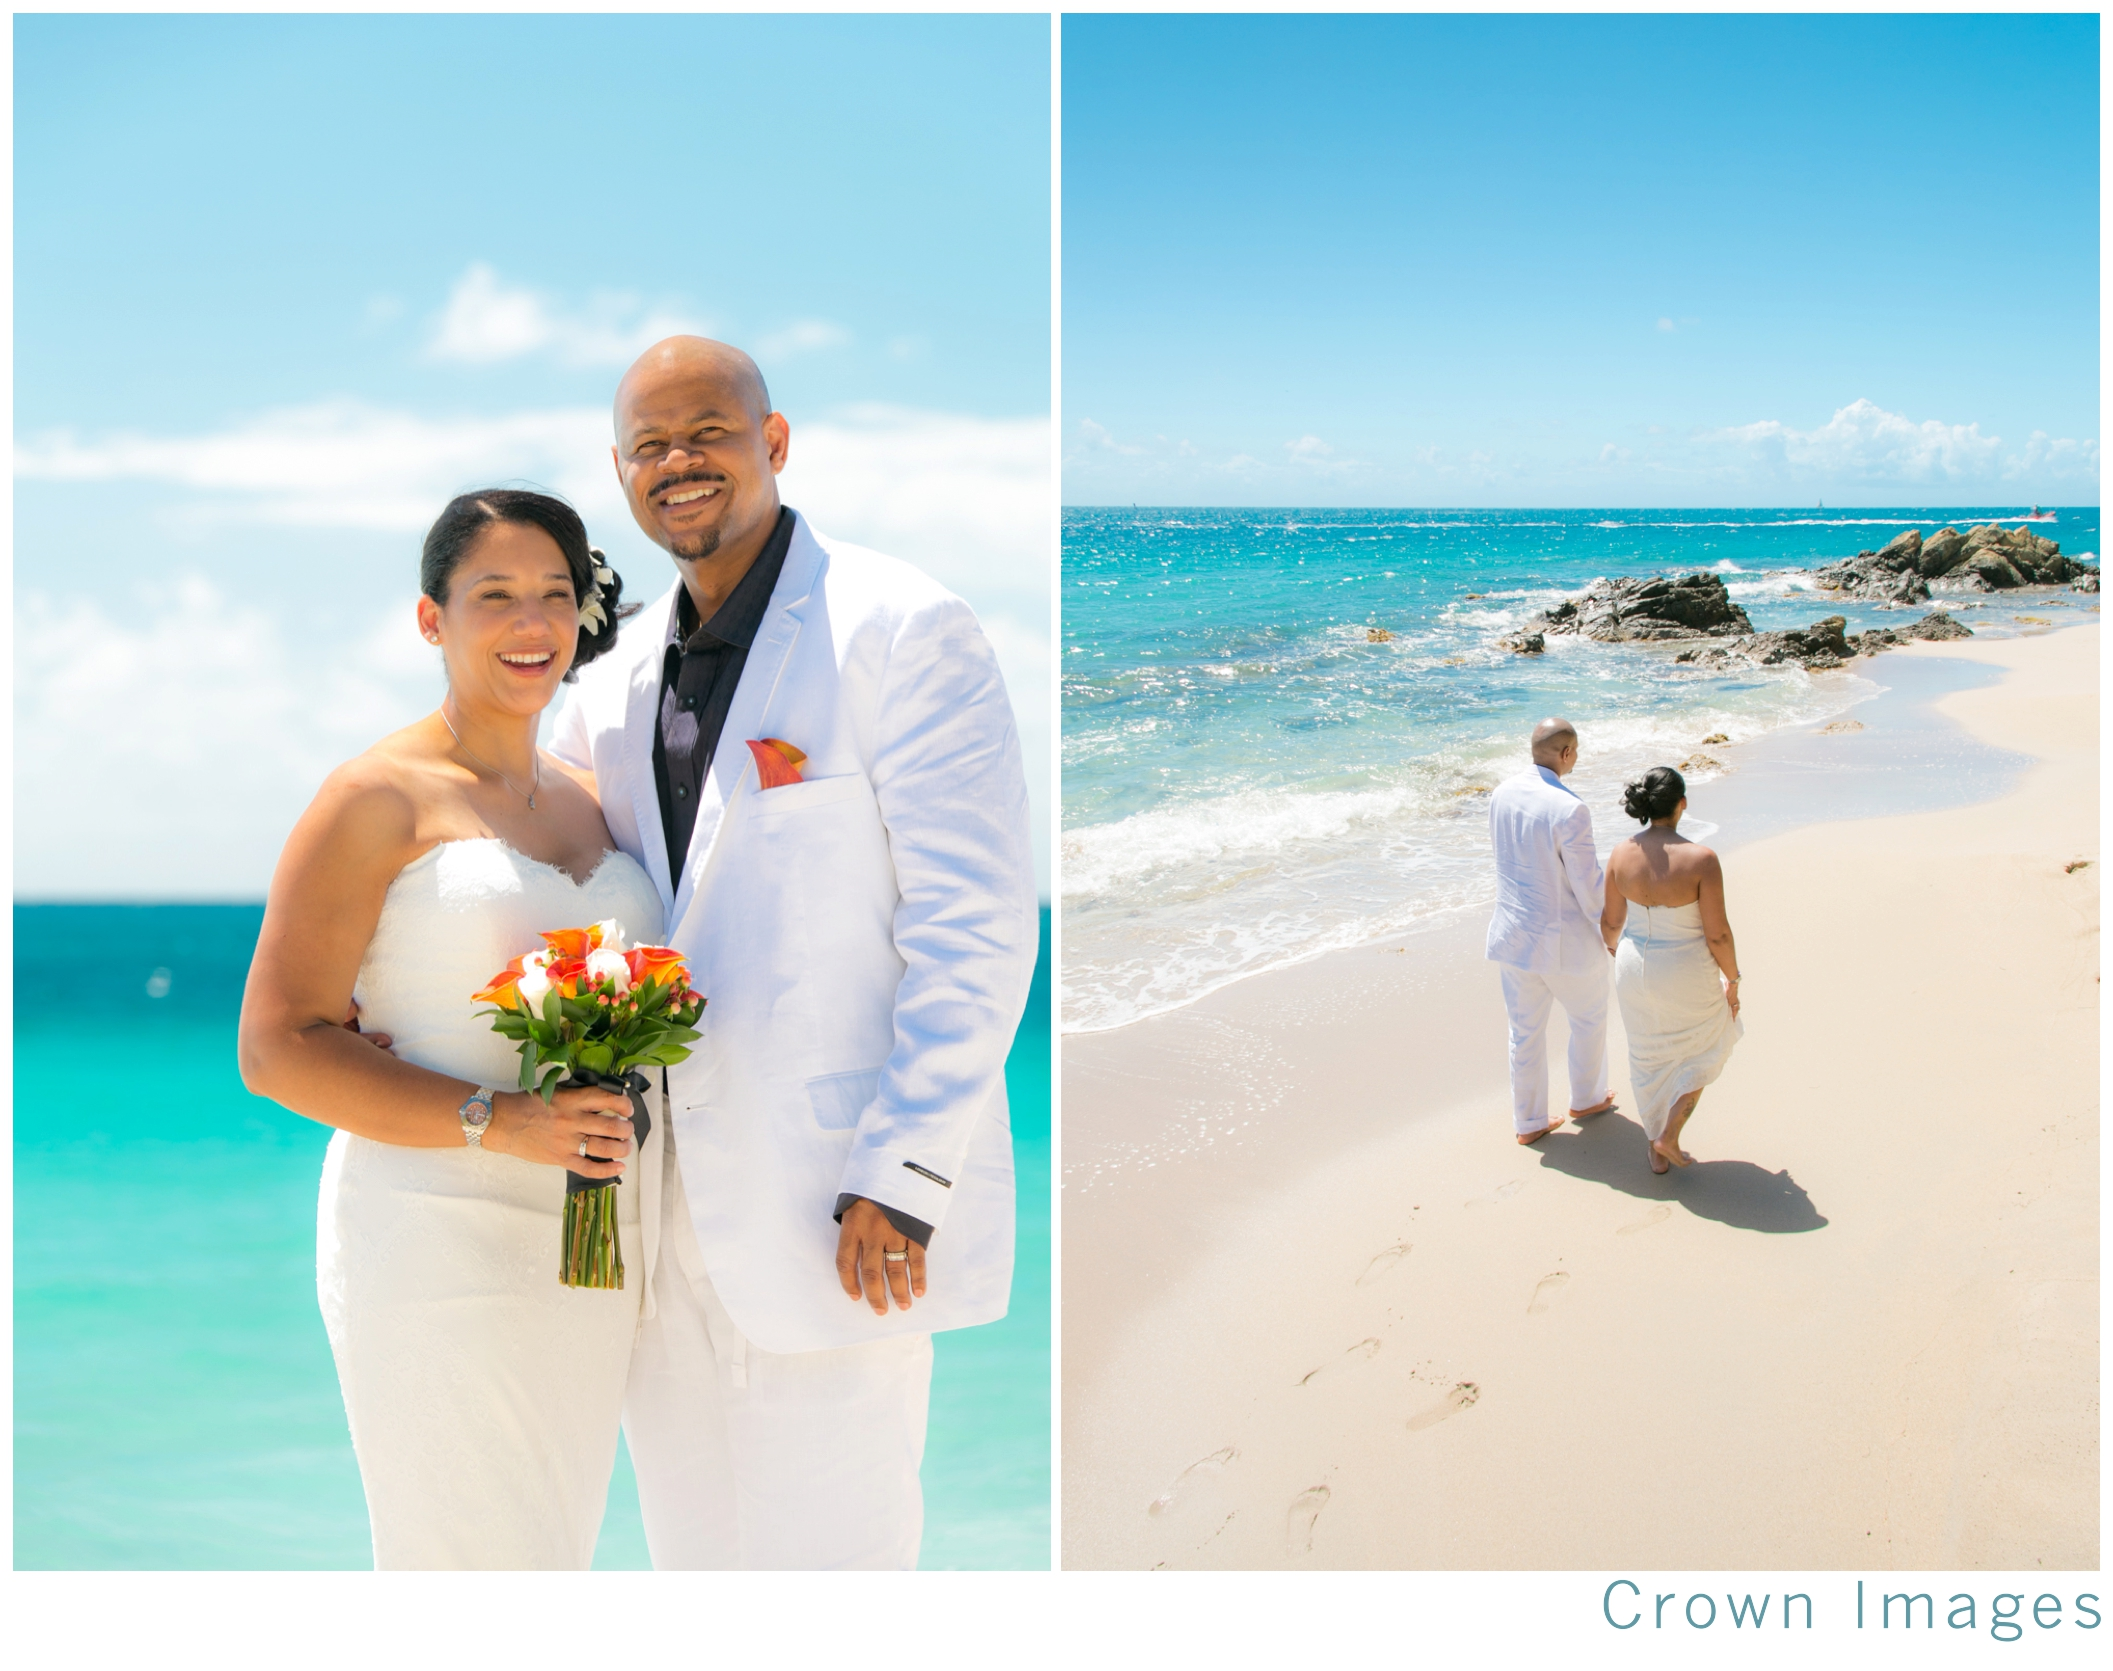 st-thomas-beach-wedding-photos_0904.jpg